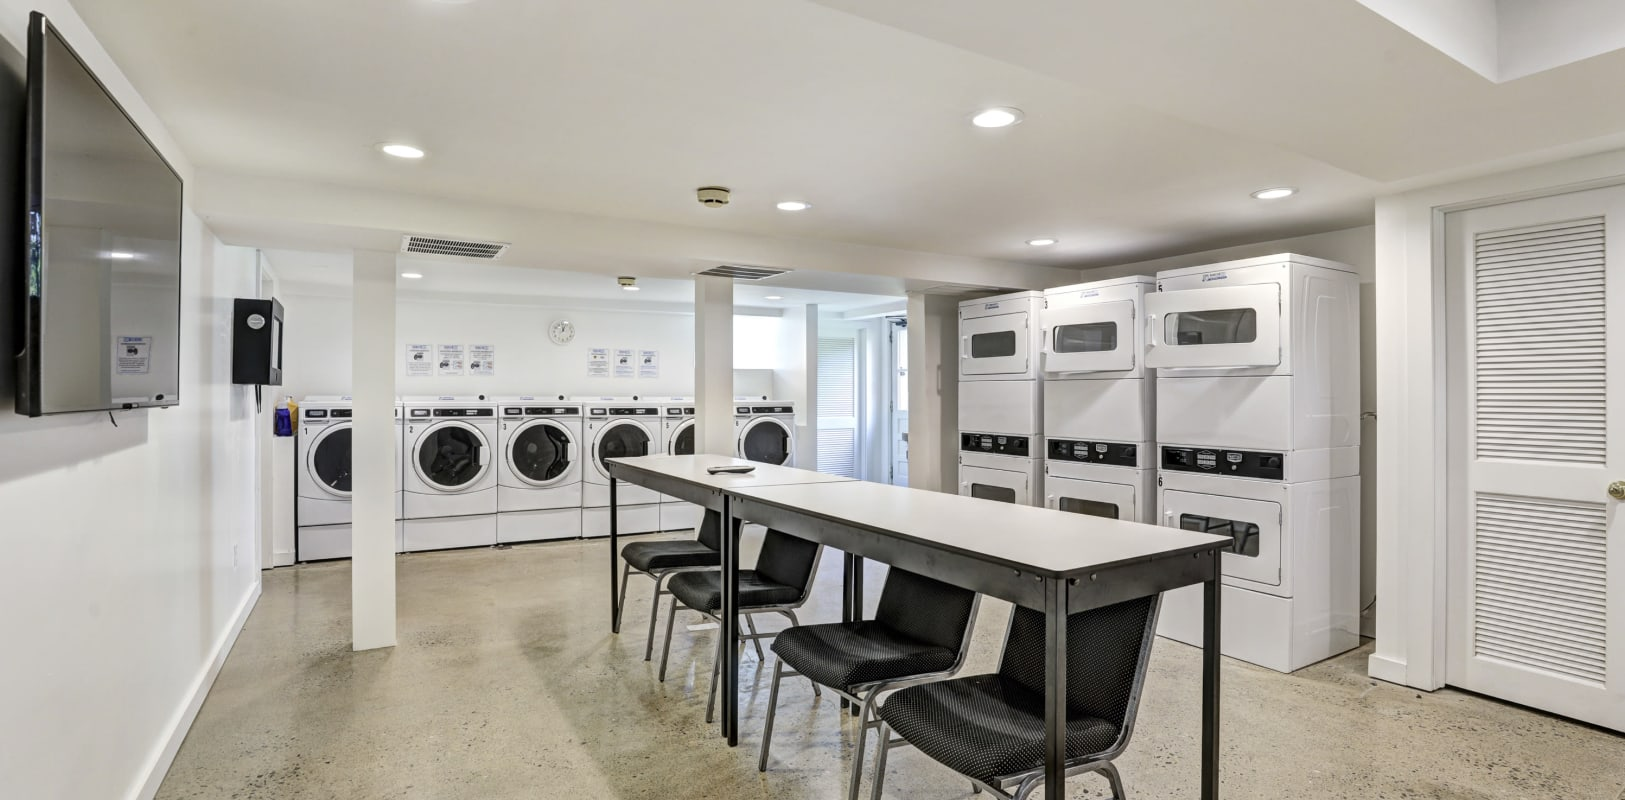 Community laundry room with plenty of machines at General Wayne Townhomes and Ridgedale Gardens in Madison, New Jersey